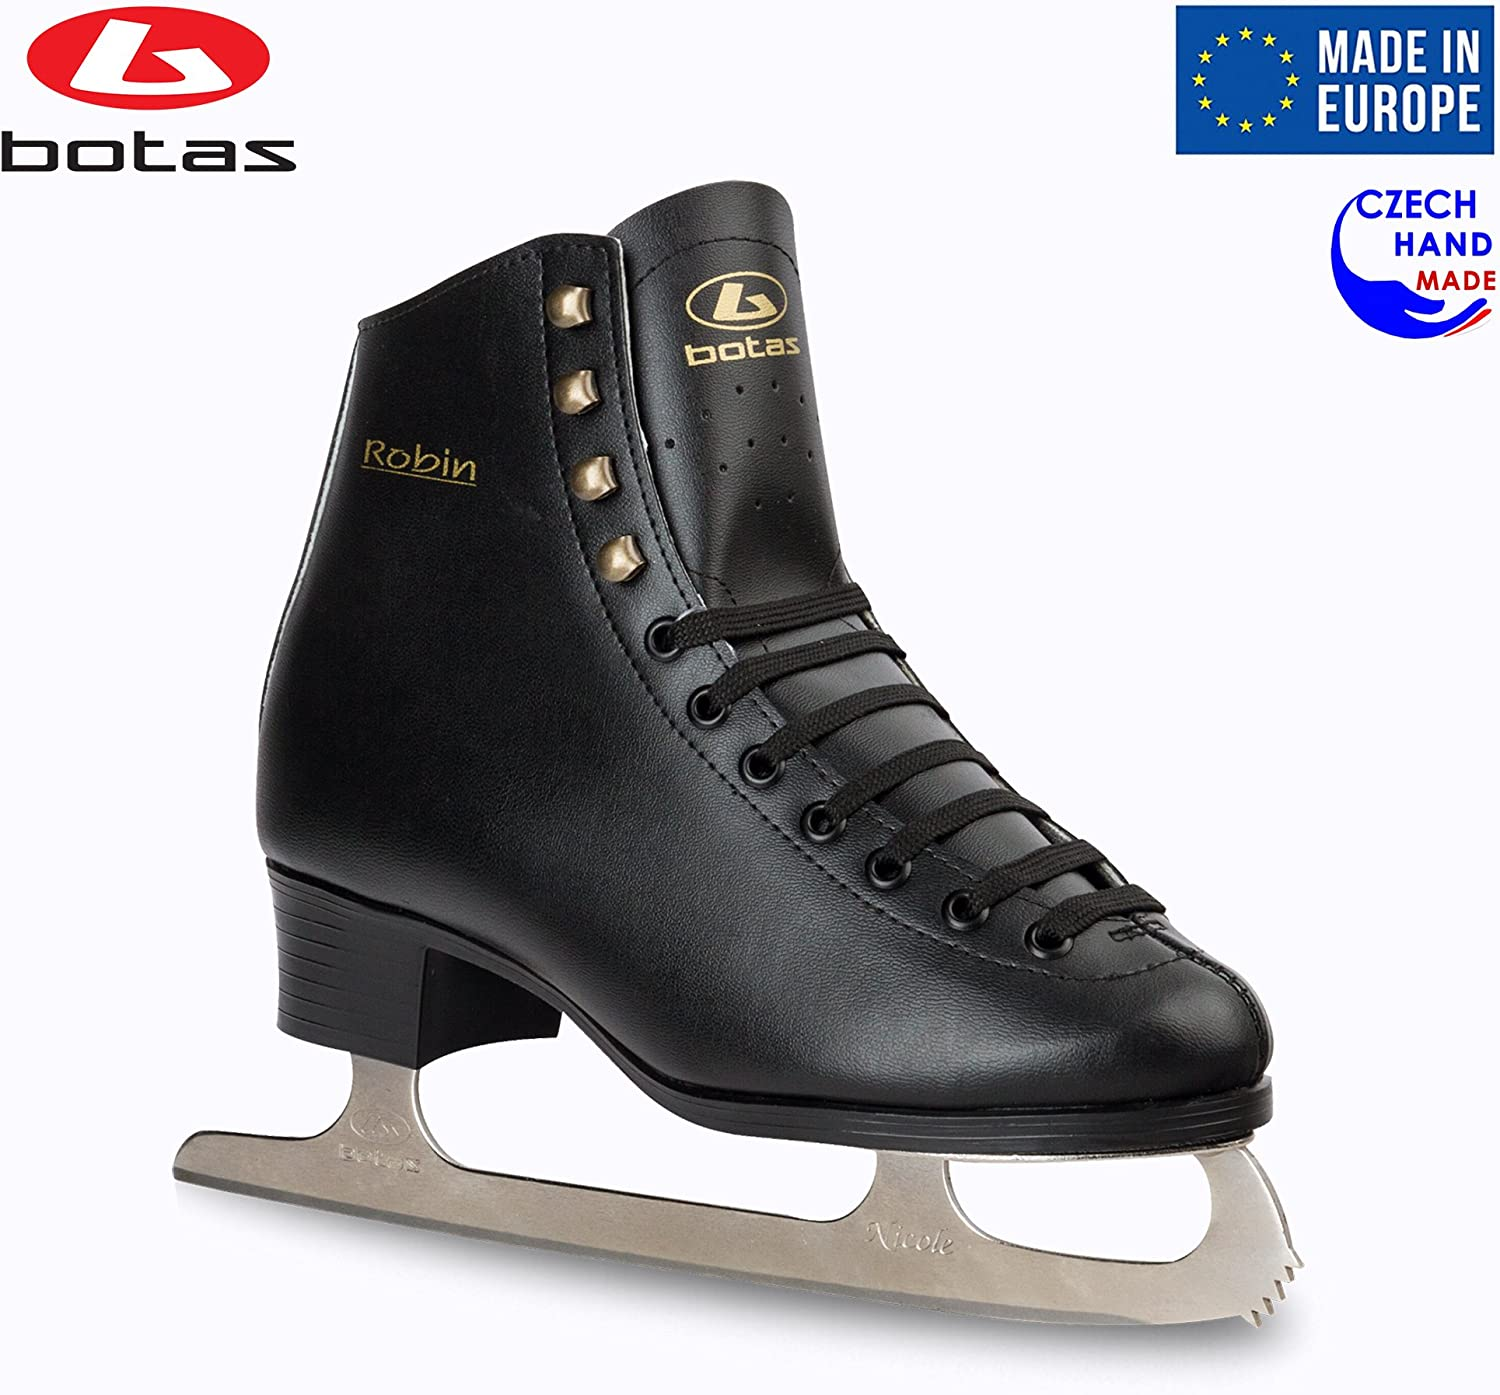 Botas - Model: Robin/Made in Europe (Czech Republic) / Figure Ice Skates for Men, Boys/Color: Black